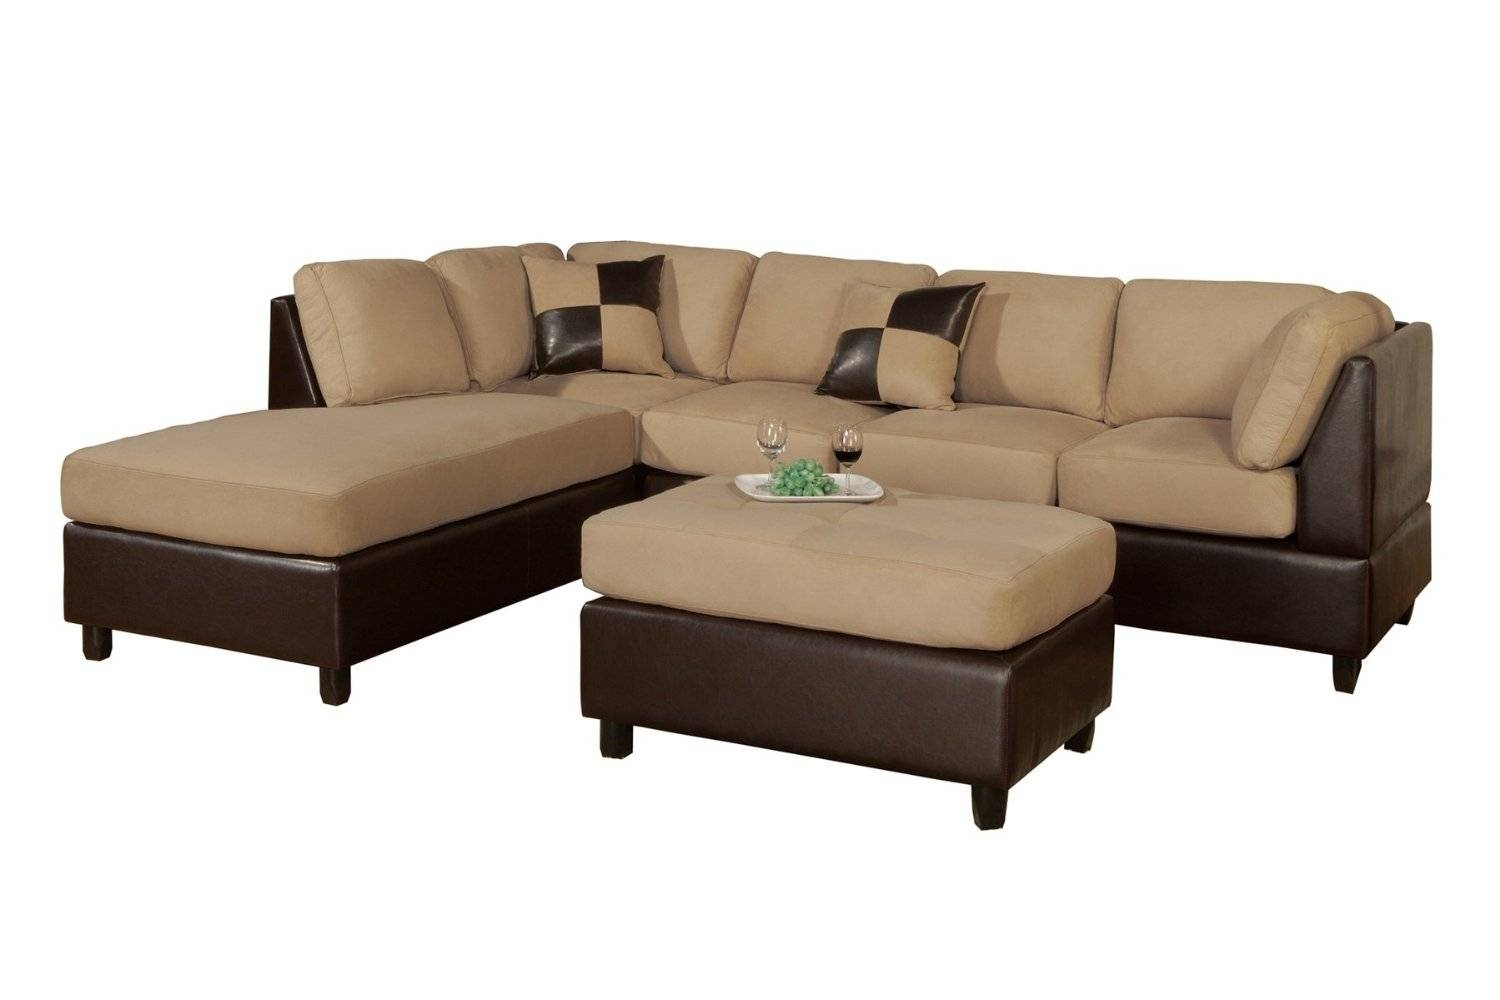 Furniture: Jcpenney Furniture | Cheap Loveseat | Sofas Under 300 In Jcpenney Sectional Sofas (View 11 of 15)